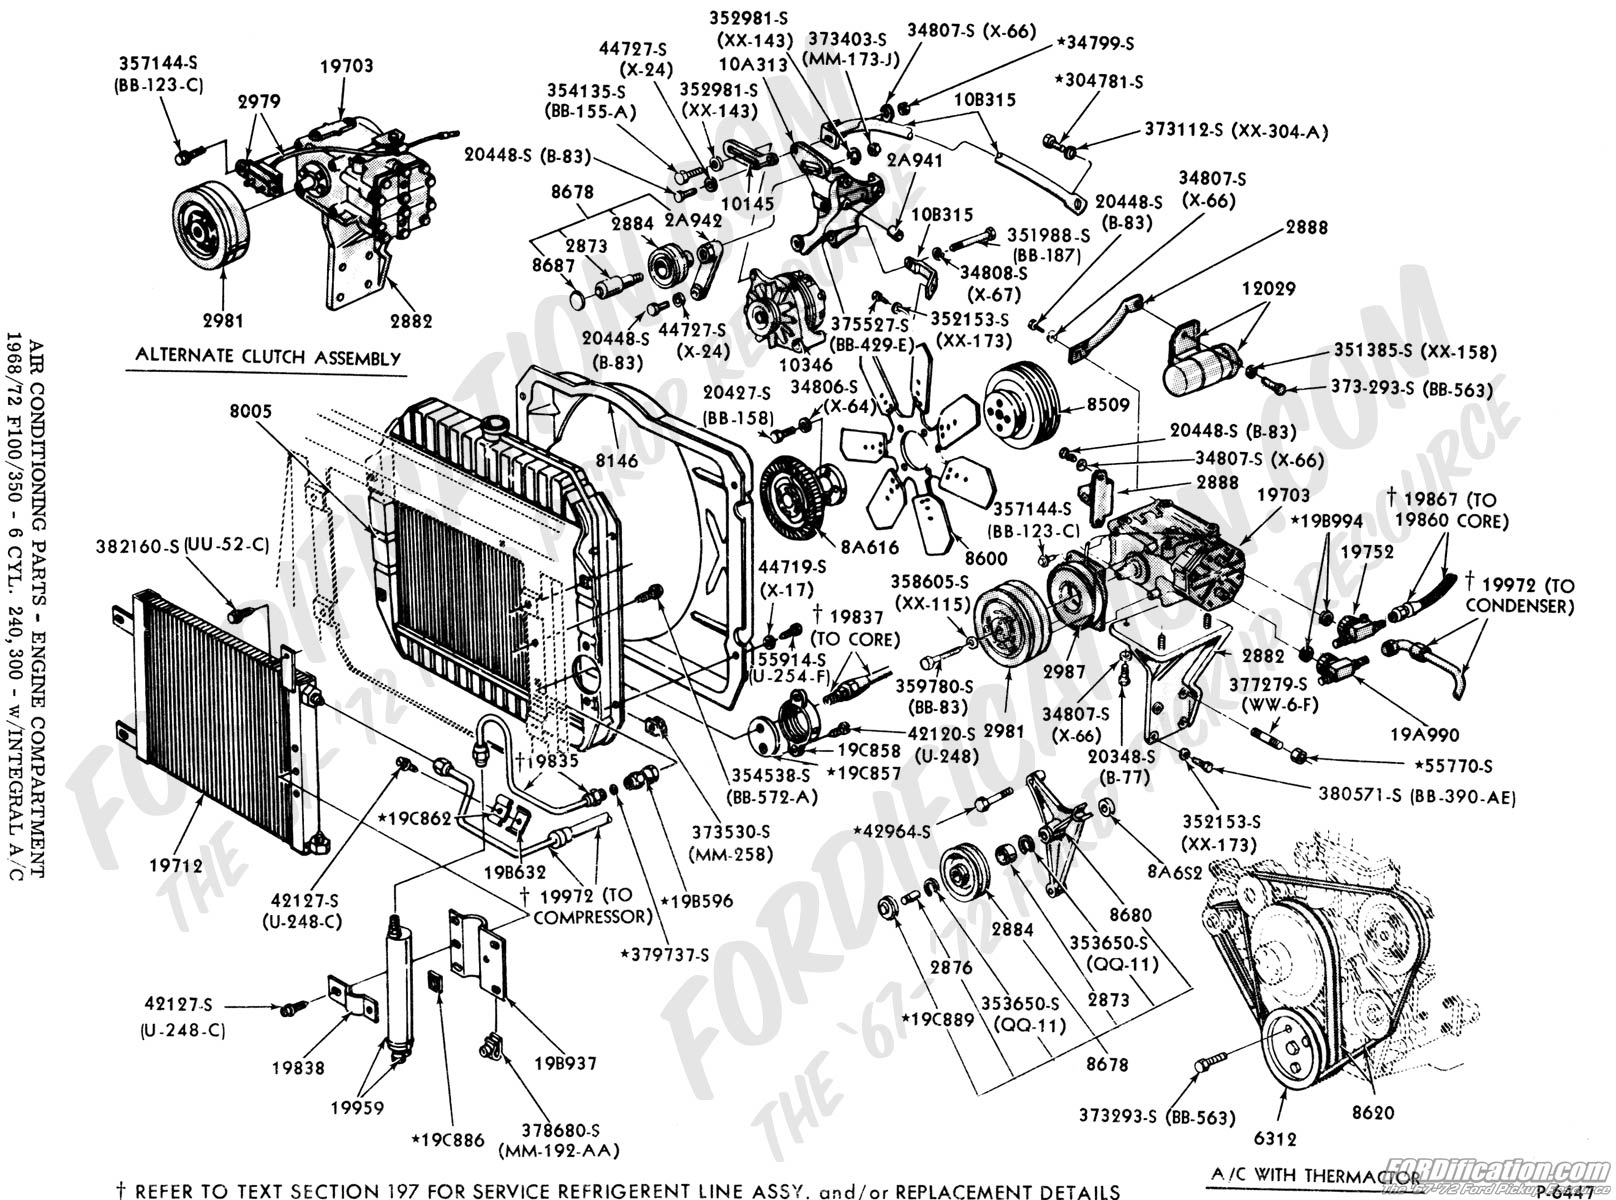 Ford 390 Engine Parts Diagram Bmw E Engine Parts Diagram Bmw Wiring Diagrams Ford Engine Parts